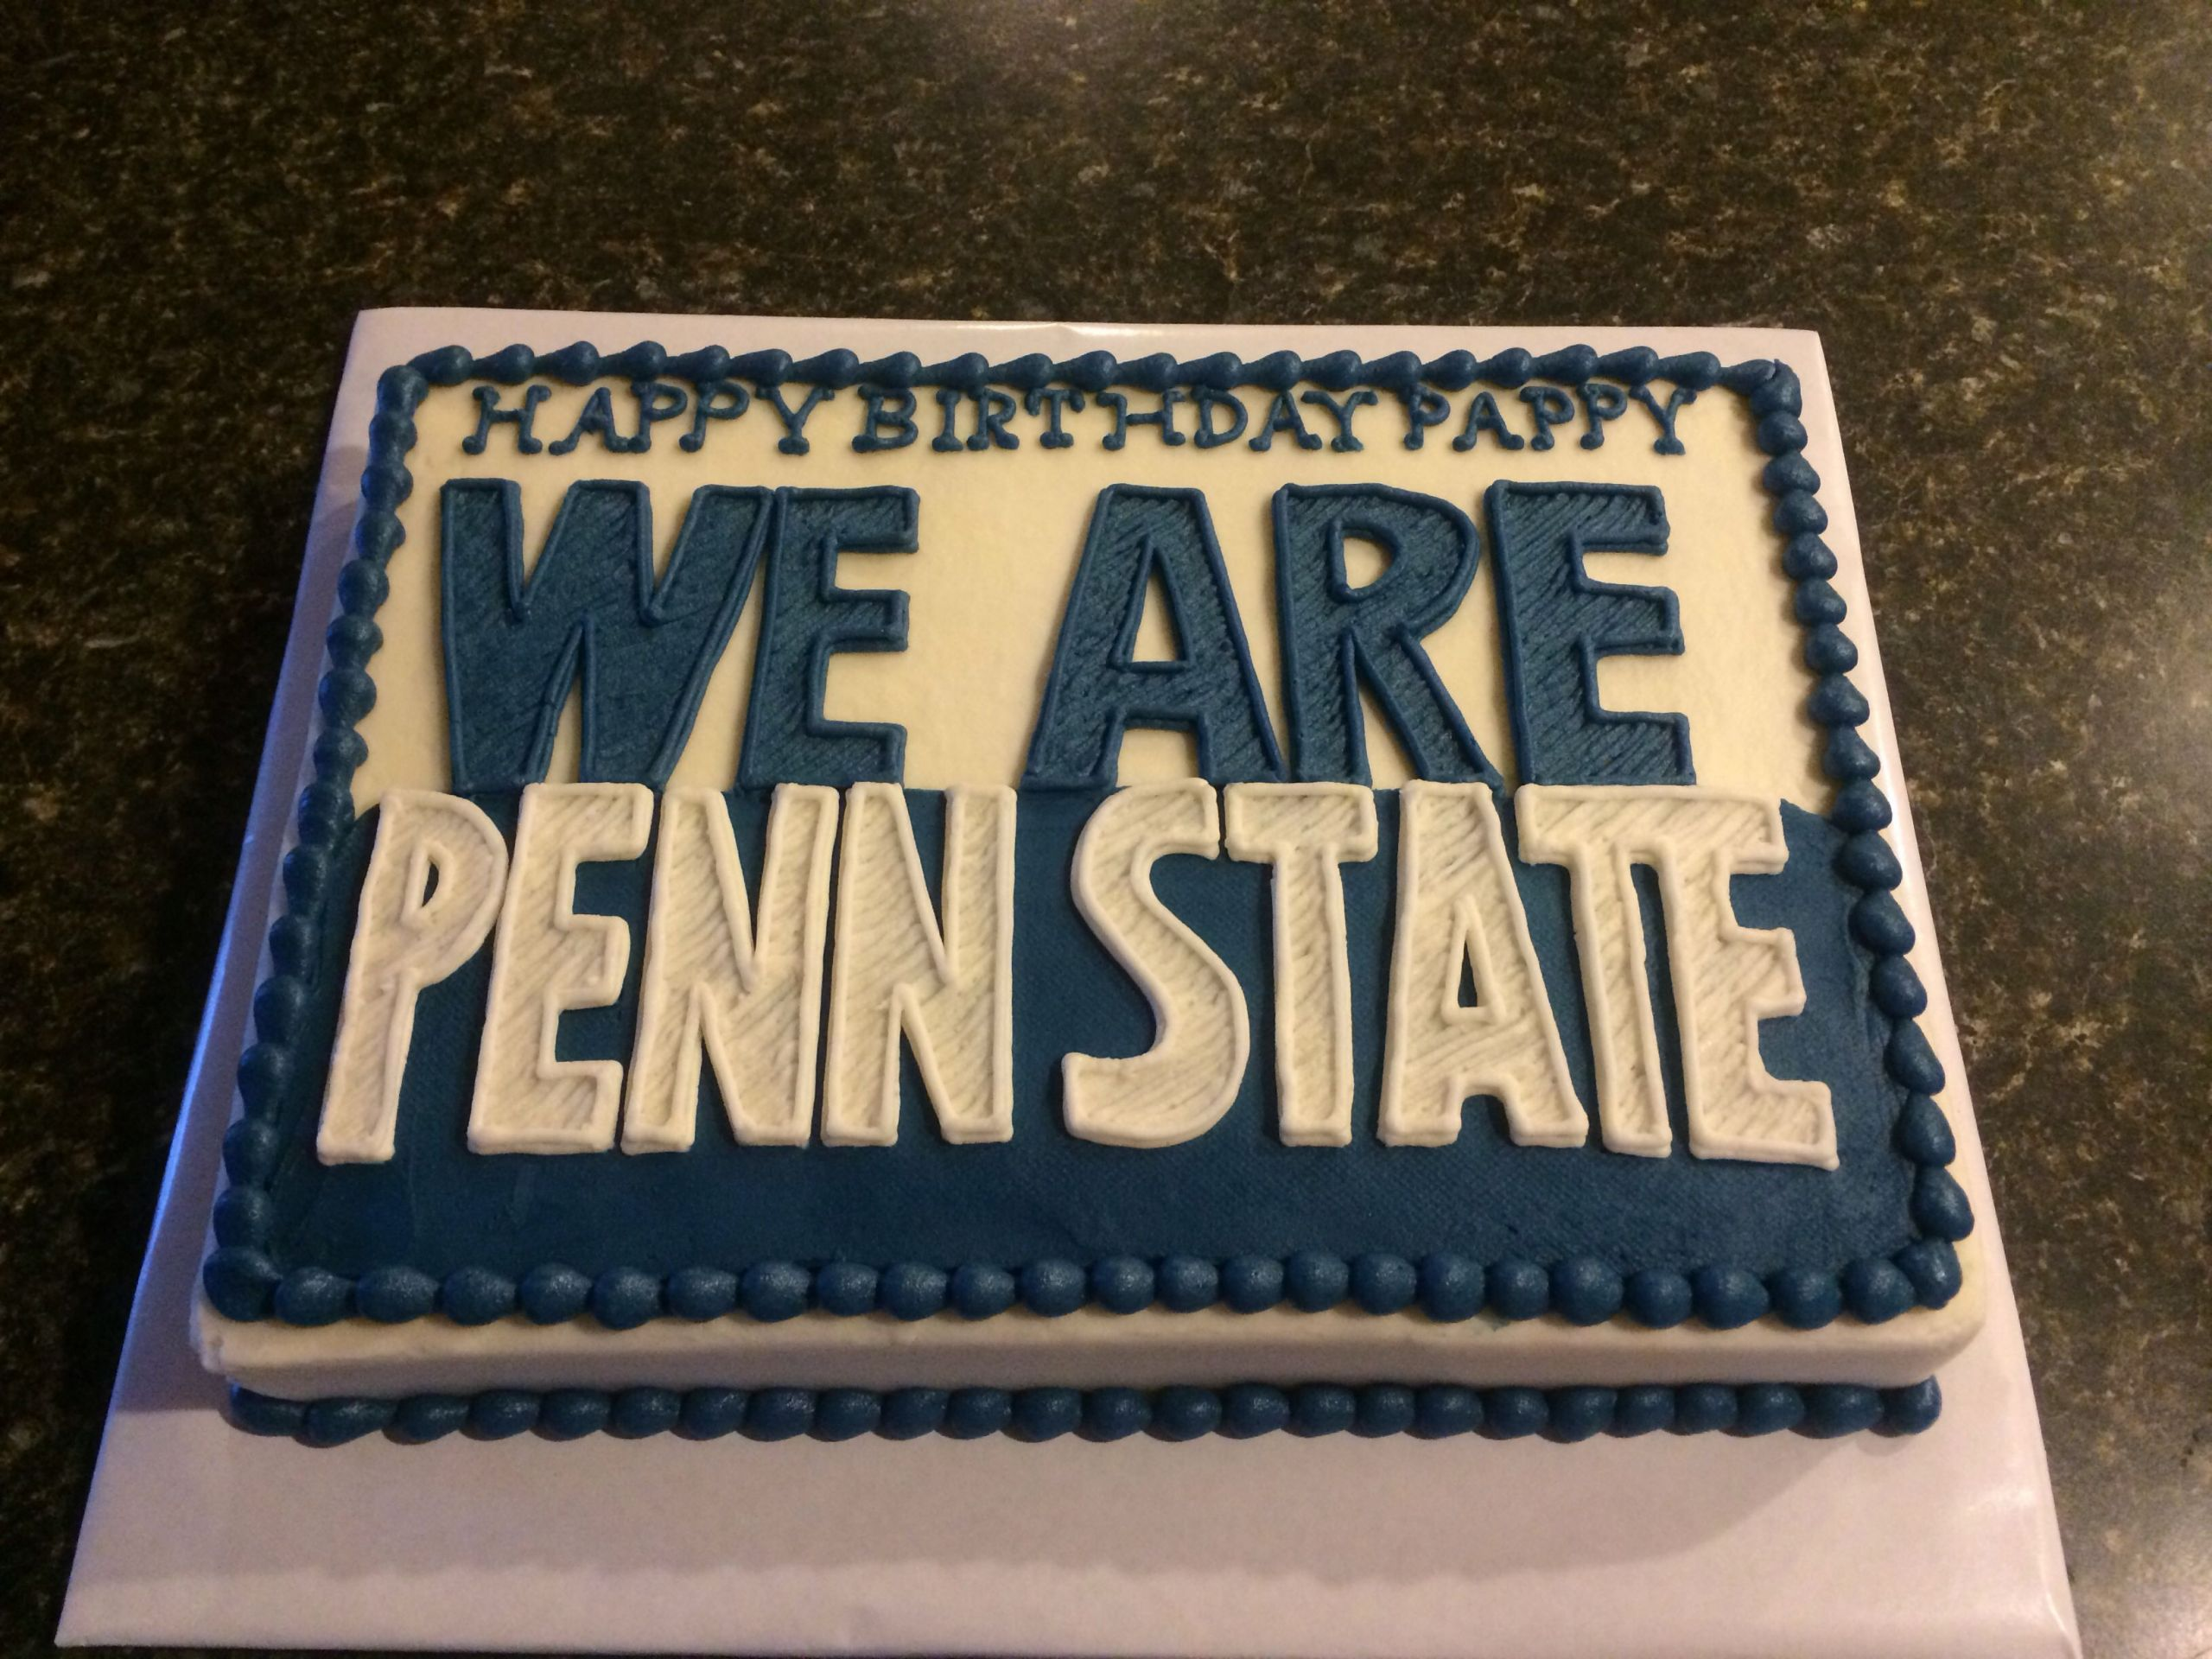 Penn State Graduation Gift Ideas  Penn state sheet cake With images